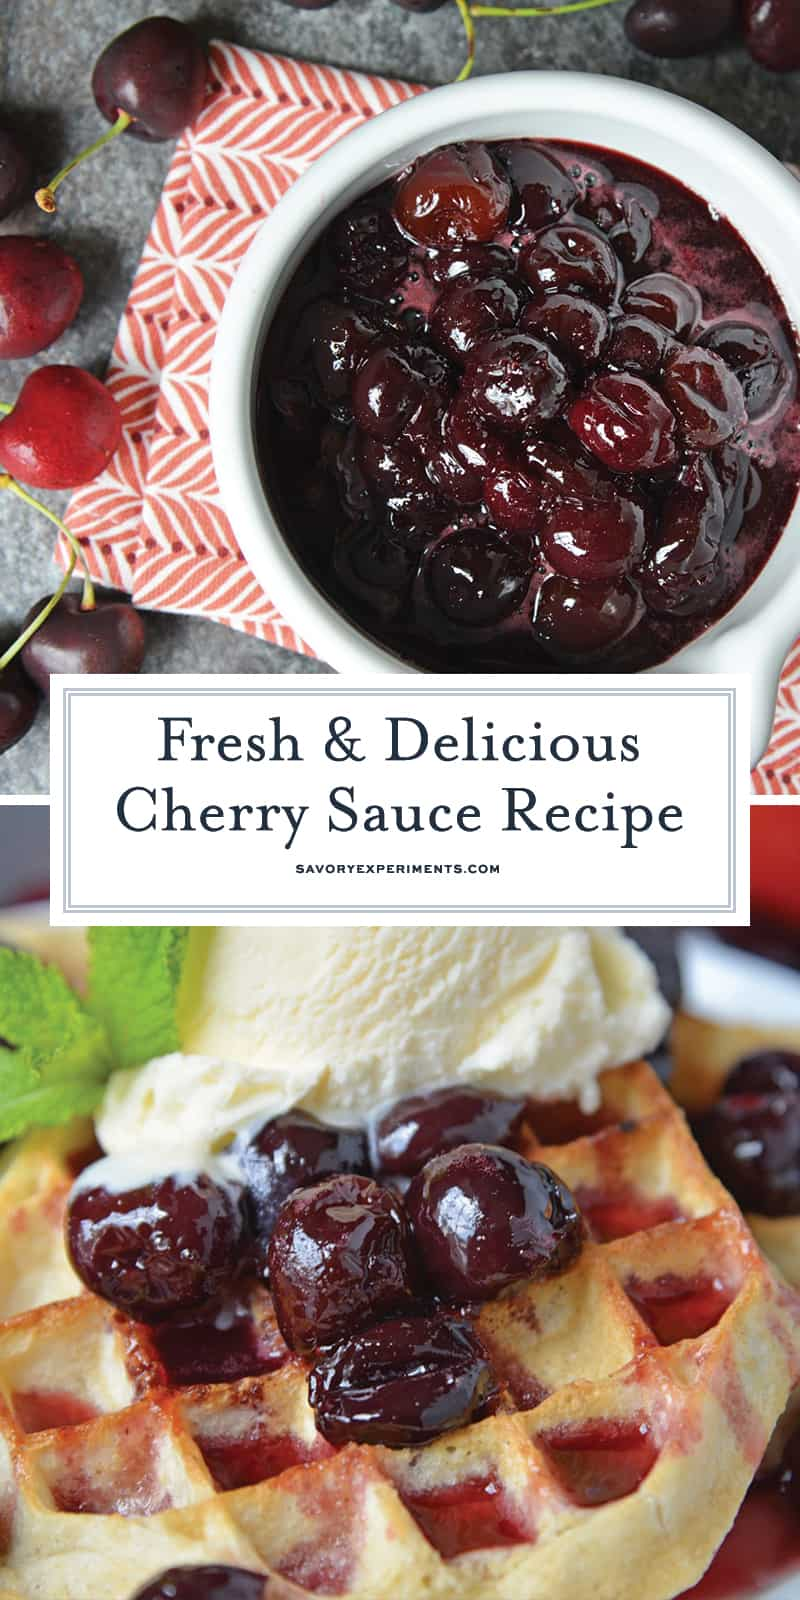 This Fresh Cherry Sauce is a yummy way to use fresh cherries. Spoon over ice cream, cake, waffles and more! #cherrysaucerecipe #freshcherryrecipes #desserttoppings www.savoryexperiments.com